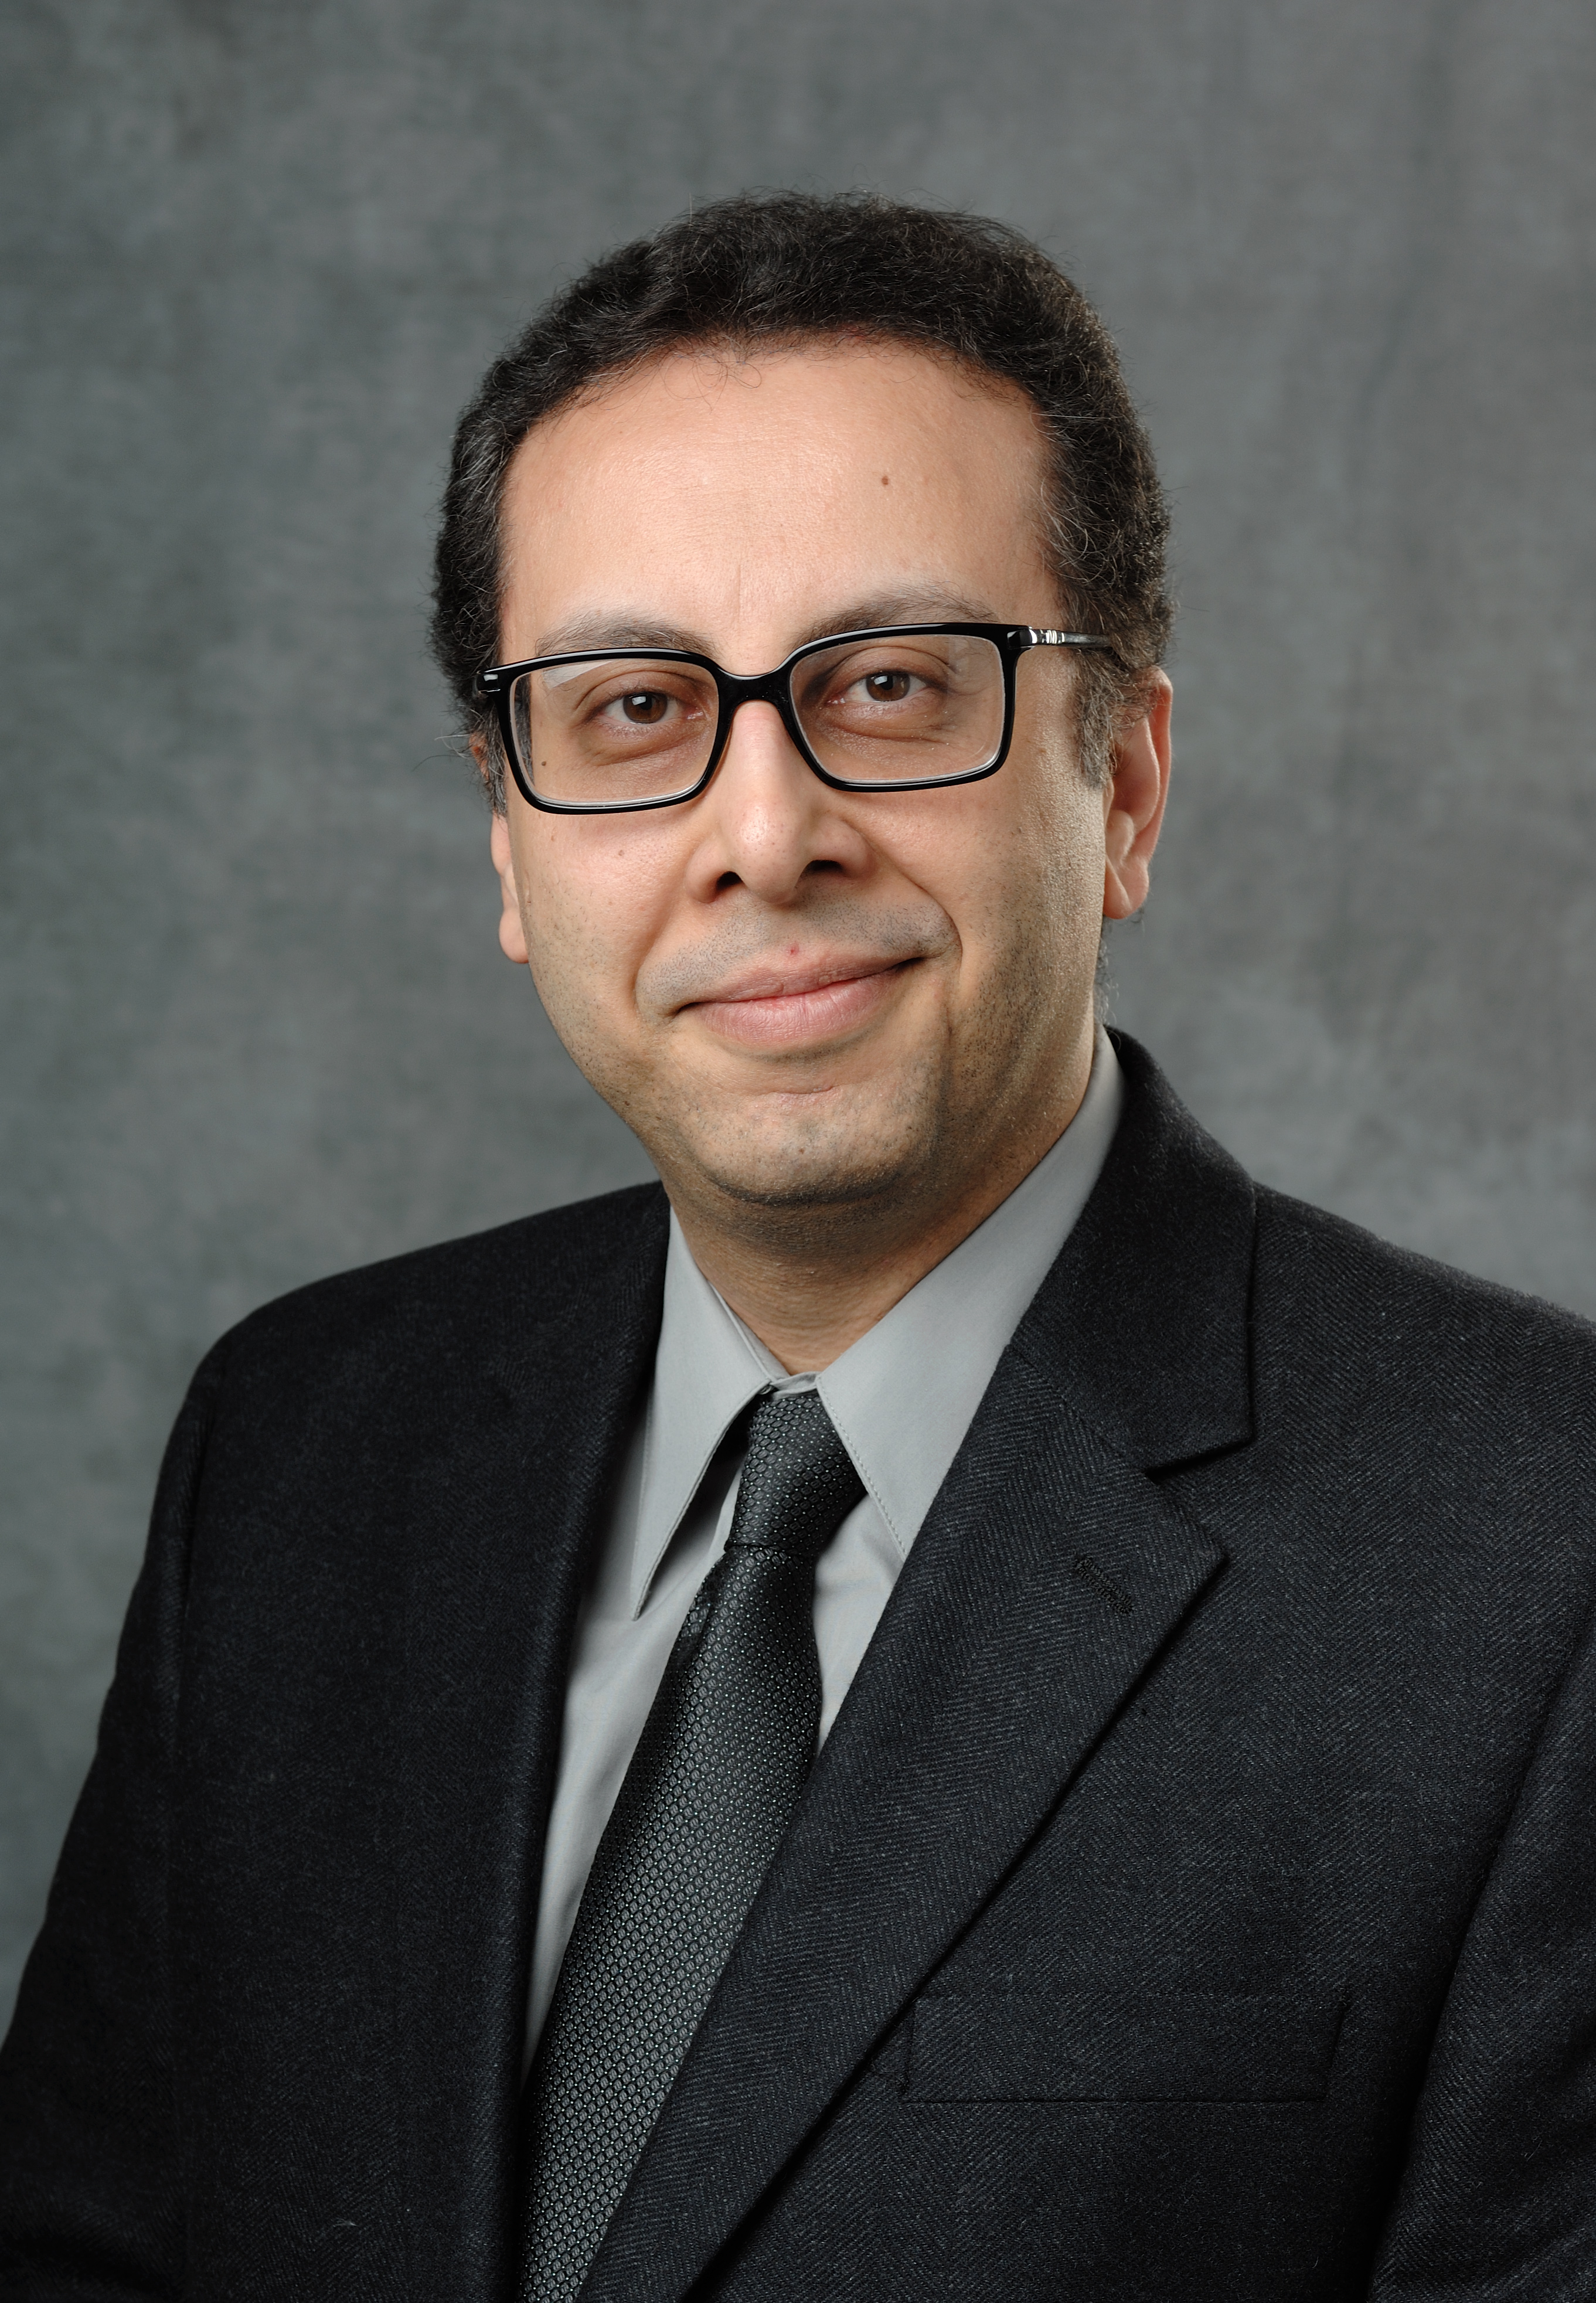 Photo of Dr. Pouyan Nejadhashemi